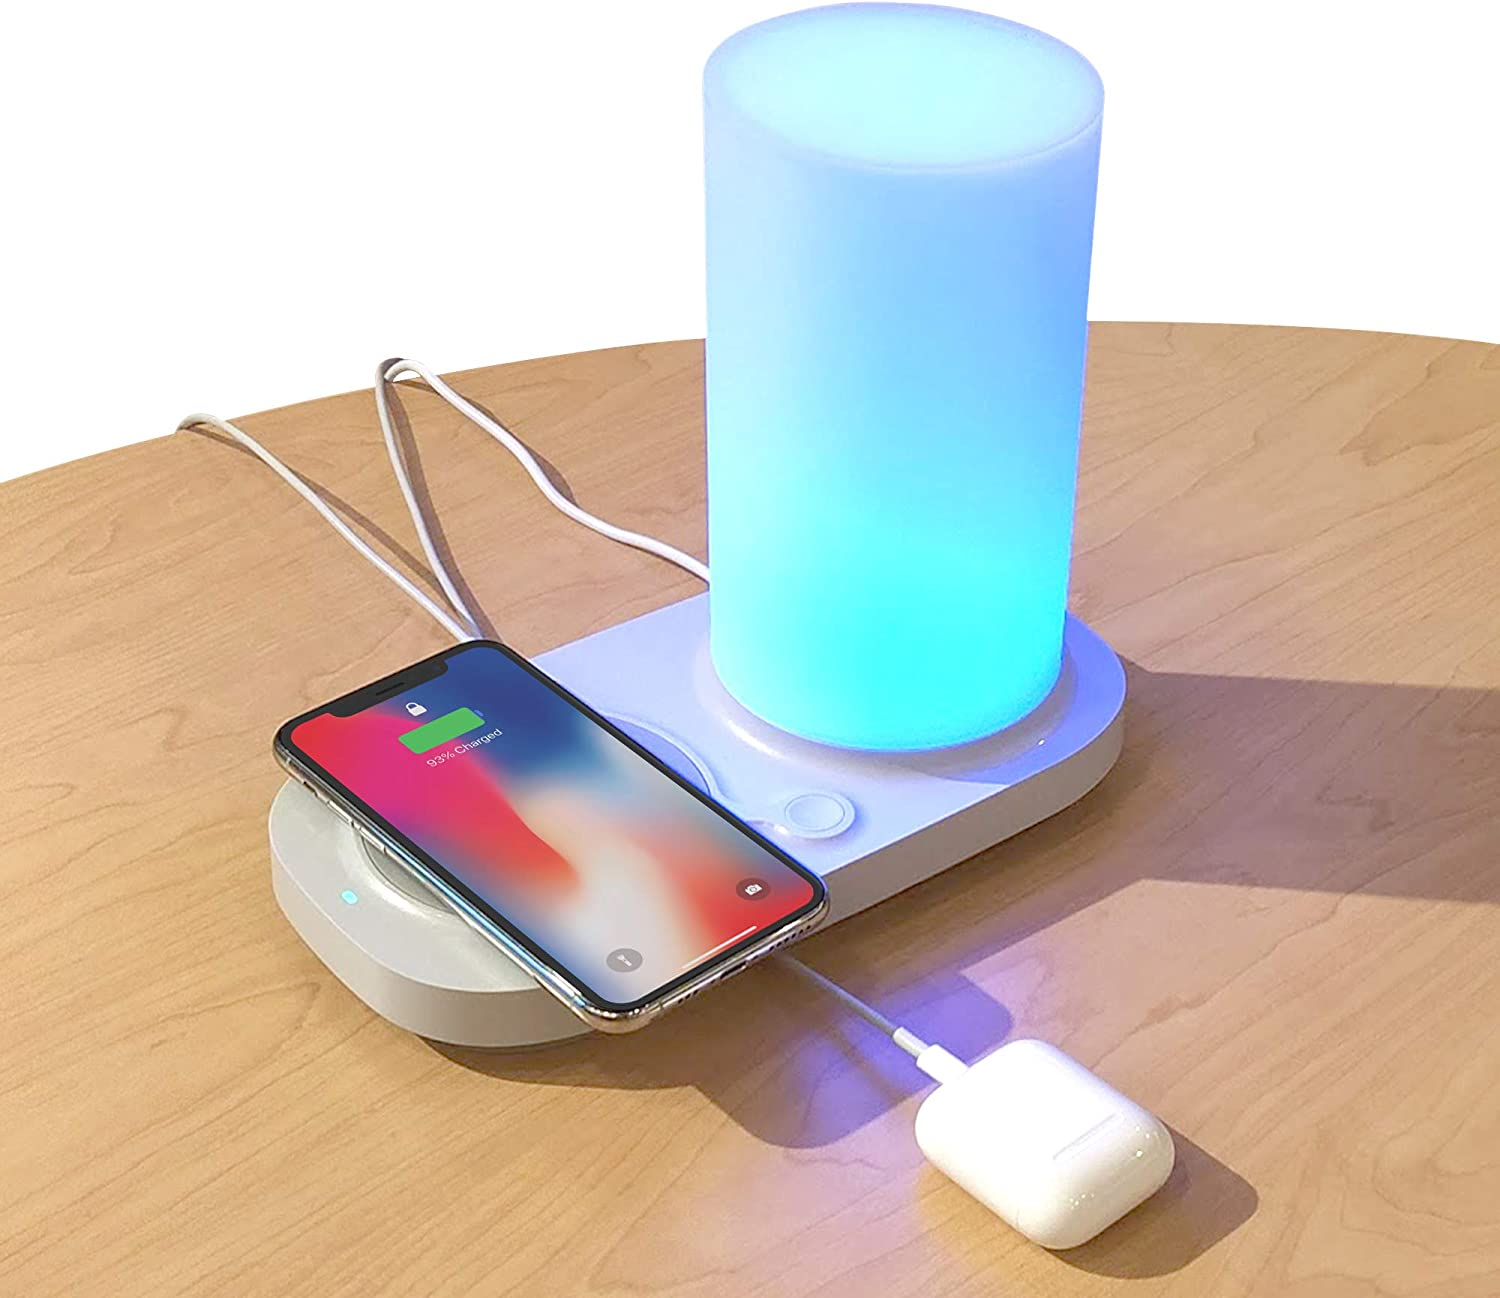 iHome Led Lamp + Wireless Charging Station: Wireless Charger with Dimmable Touch Lamp - Fast Charging Dock with 5W Qi Wireless Pad & 3 USB Ports for Apple, Samsung Galaxy & Note devices